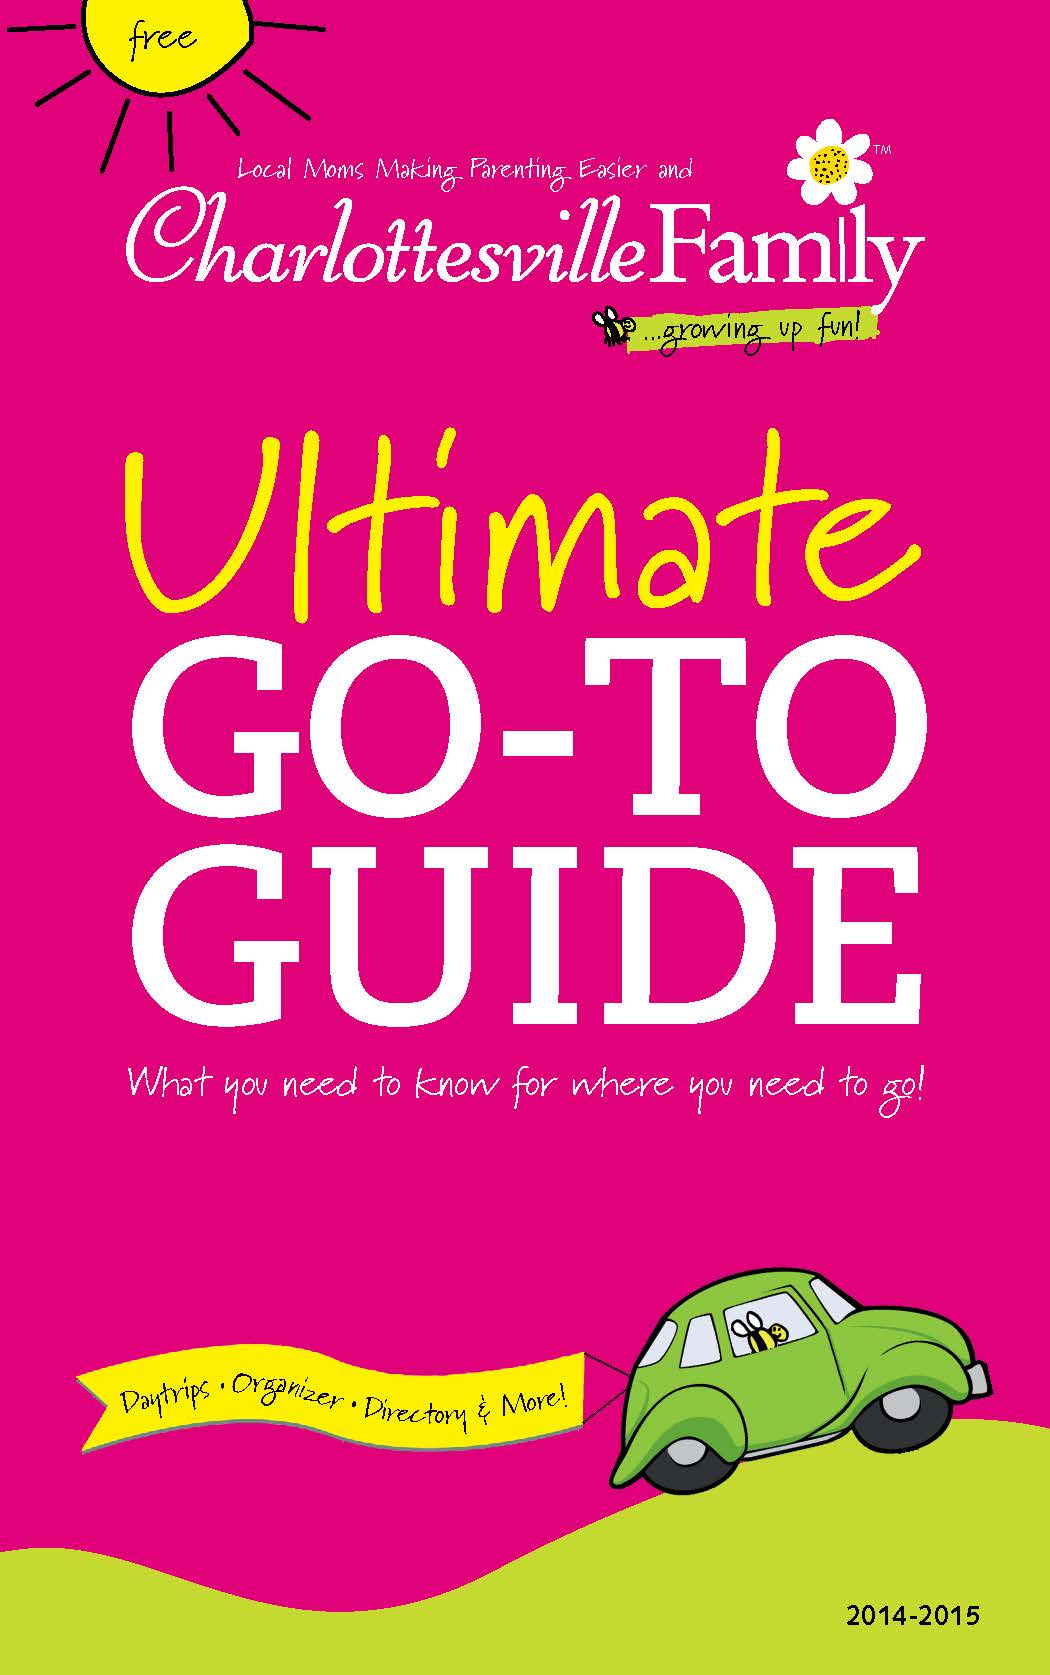 The Charlottesville Ultimate Go To Guide